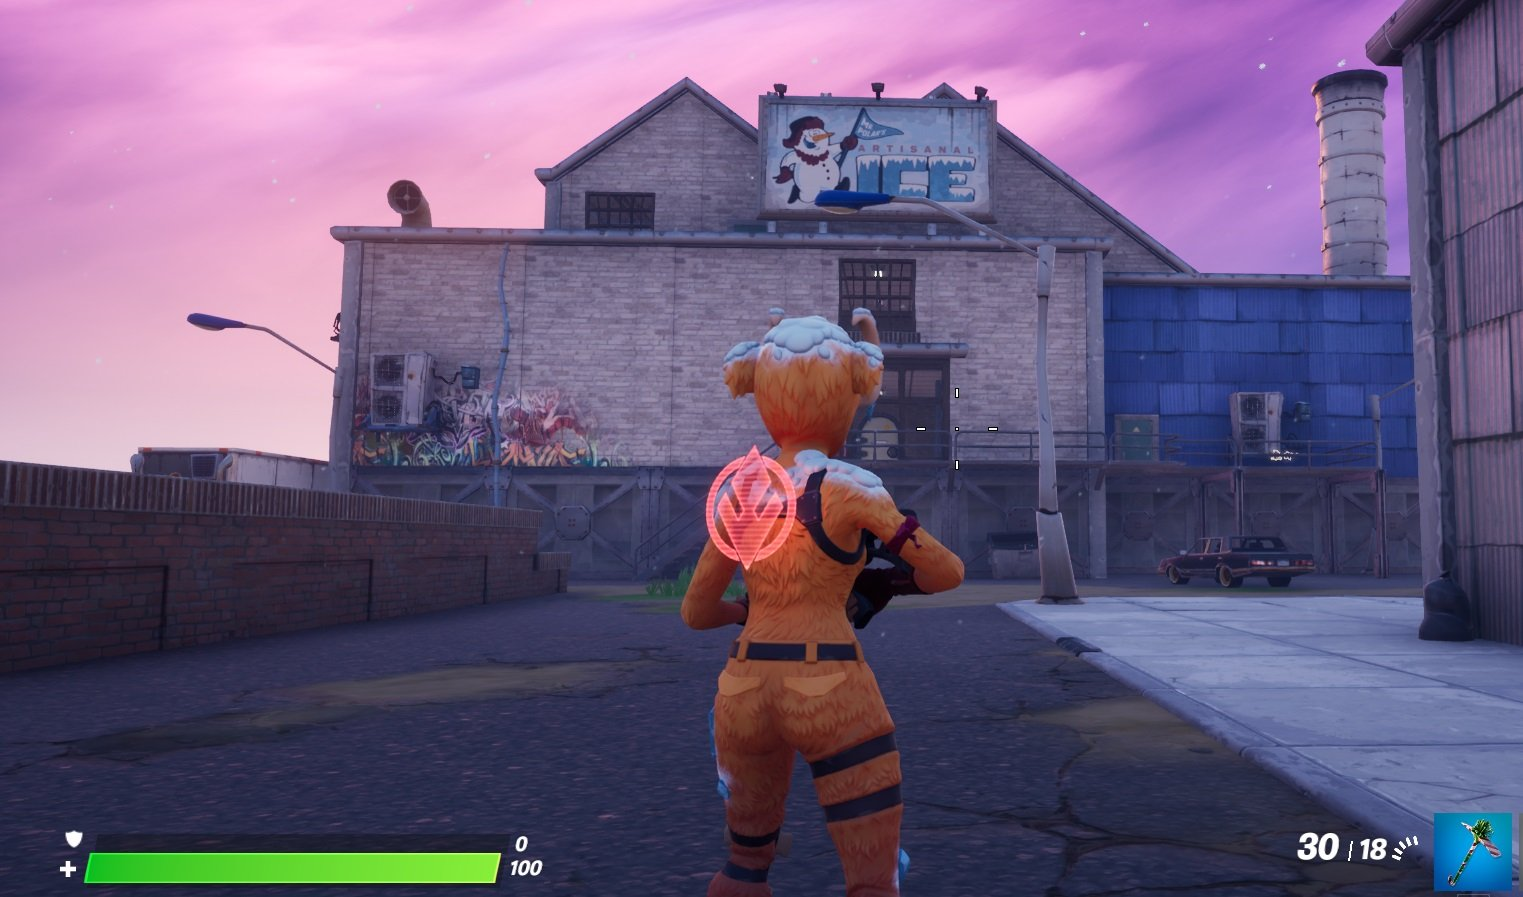 Where to find Mr. Polar's Artisanal Ice building in Fortnite